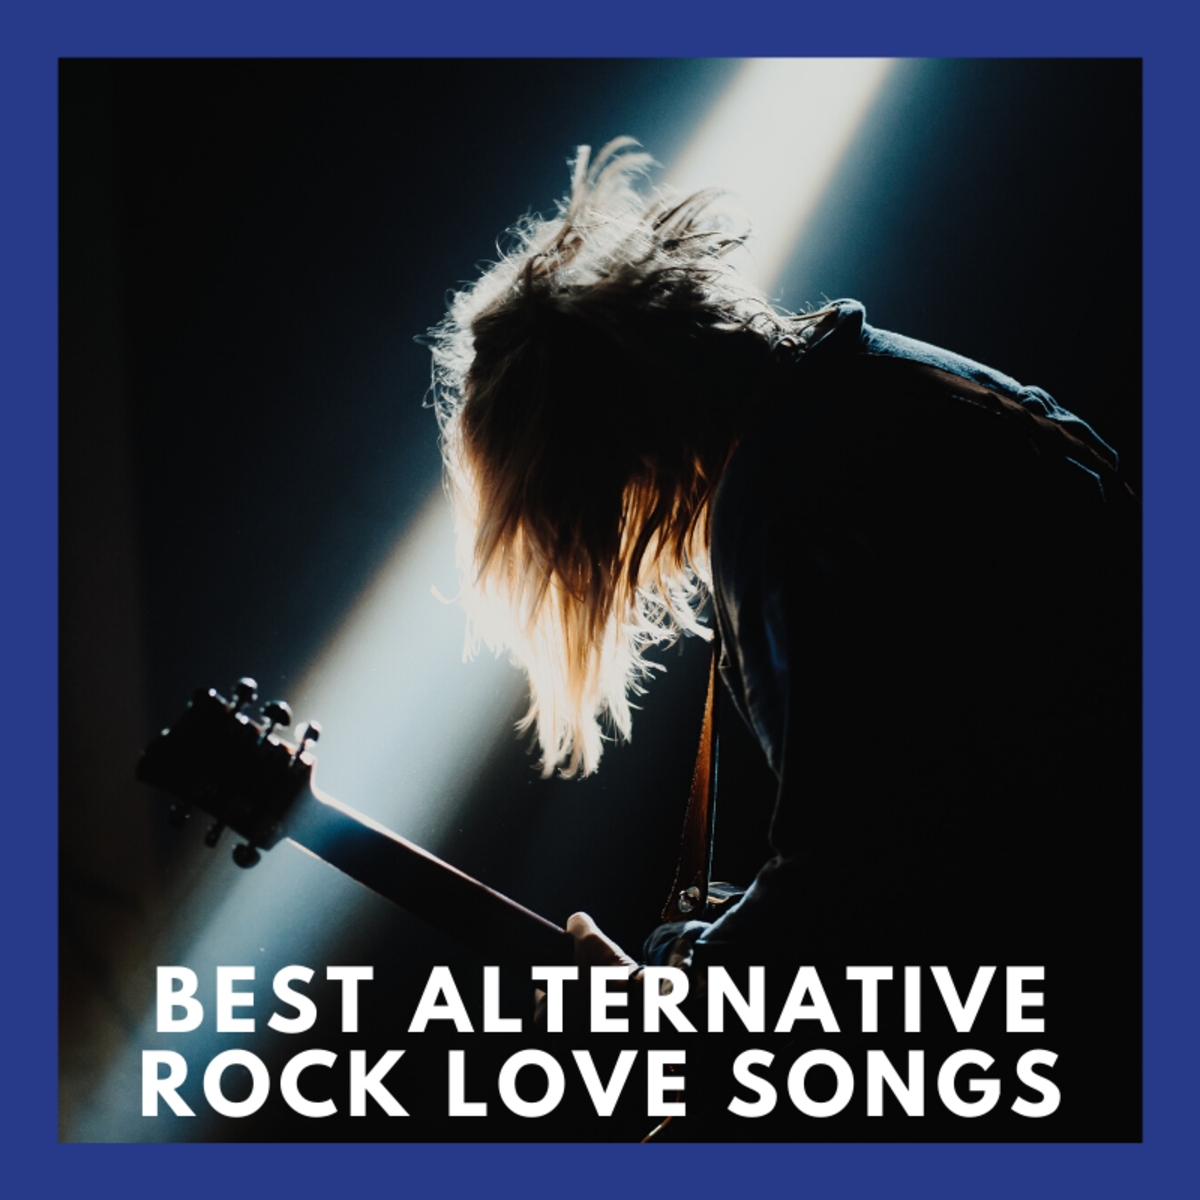 These love songs are perfect for a romantic get-together.